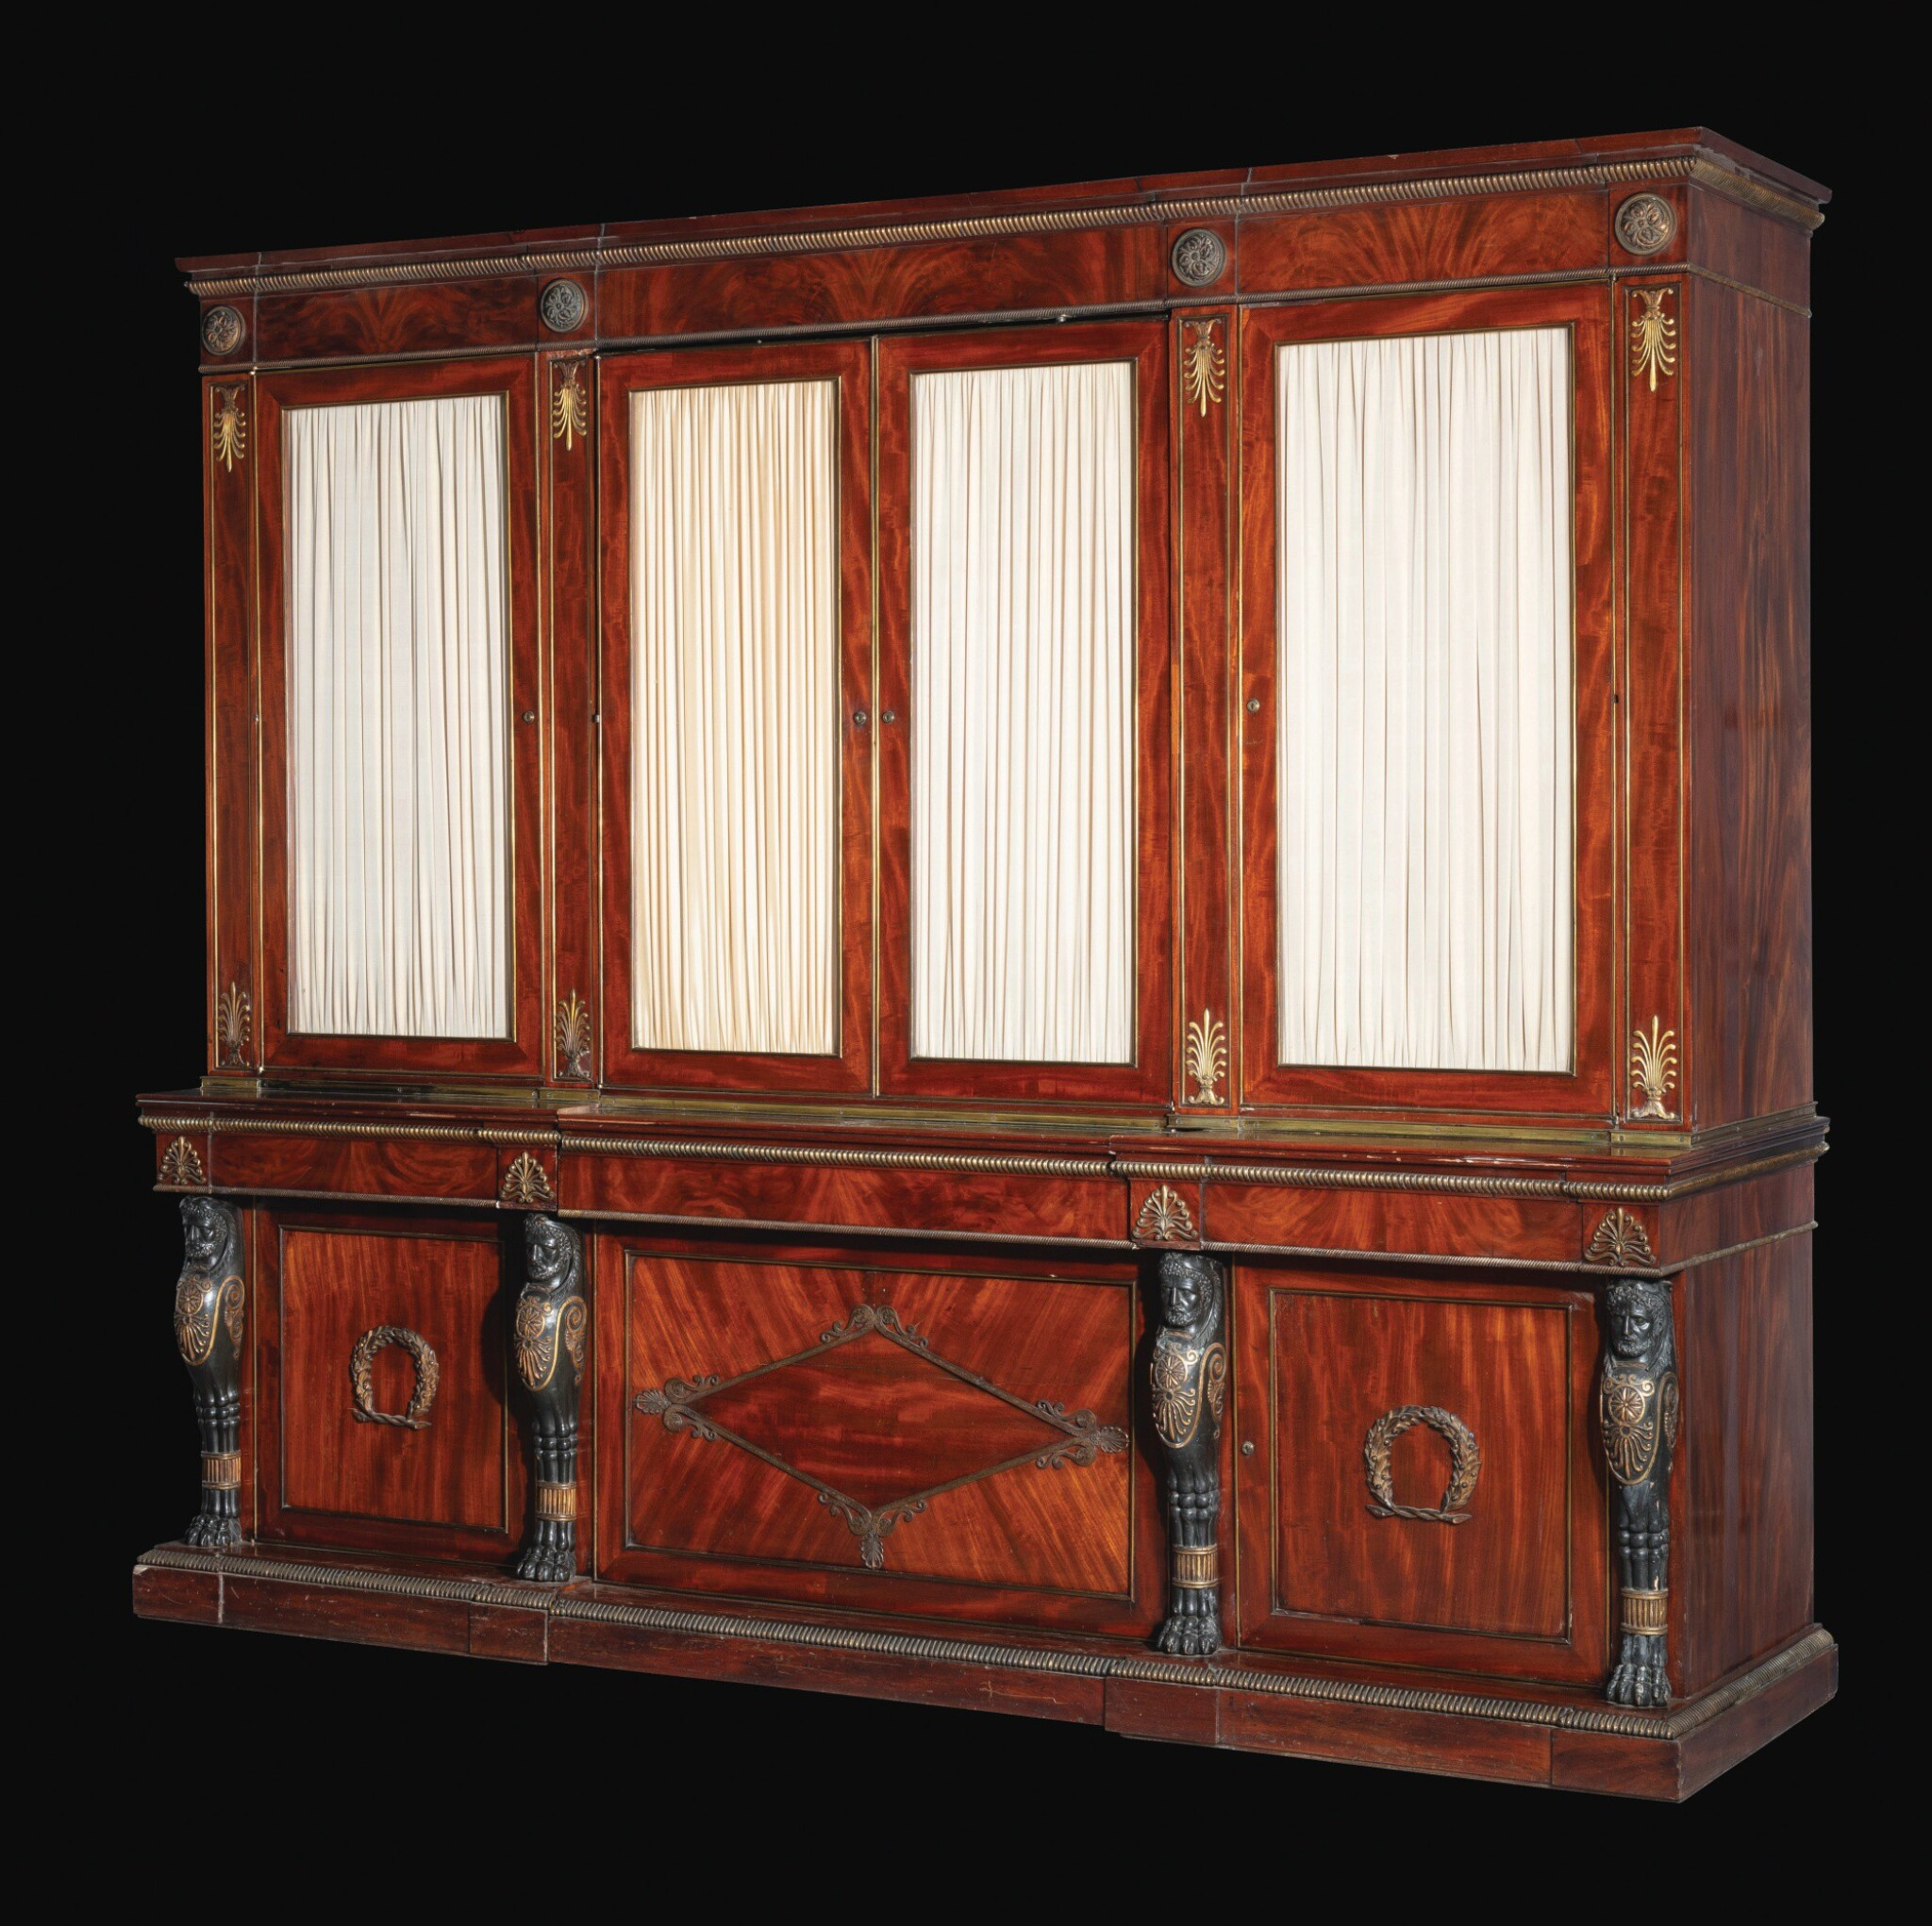 View full screen - View 1 of Lot 28. A late George III gilt-bronze mounted mahogany library bookcase incorporating a concealed door, circa 1805-10, attributed to Marsh and Tatham after designs by Thomas Hope.